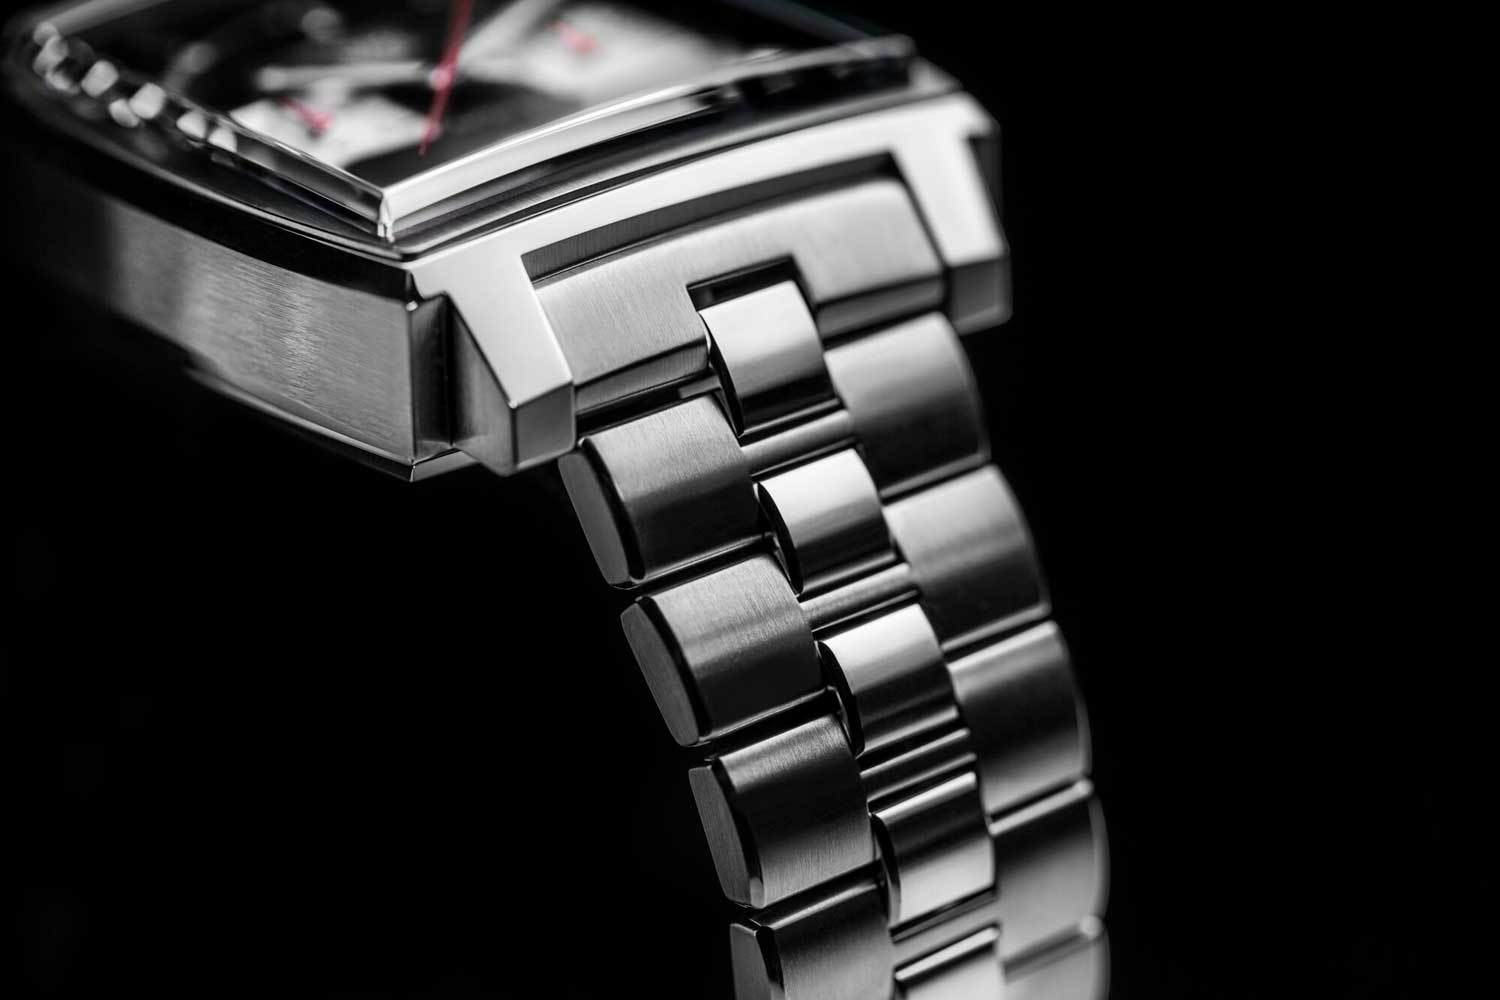 The bracelet for the TAG Heuer Monaco Chronograph 39mm Calibre Heuer 02 Automatic is a tapered one that is thicker at the watch head and thinner as it moves away